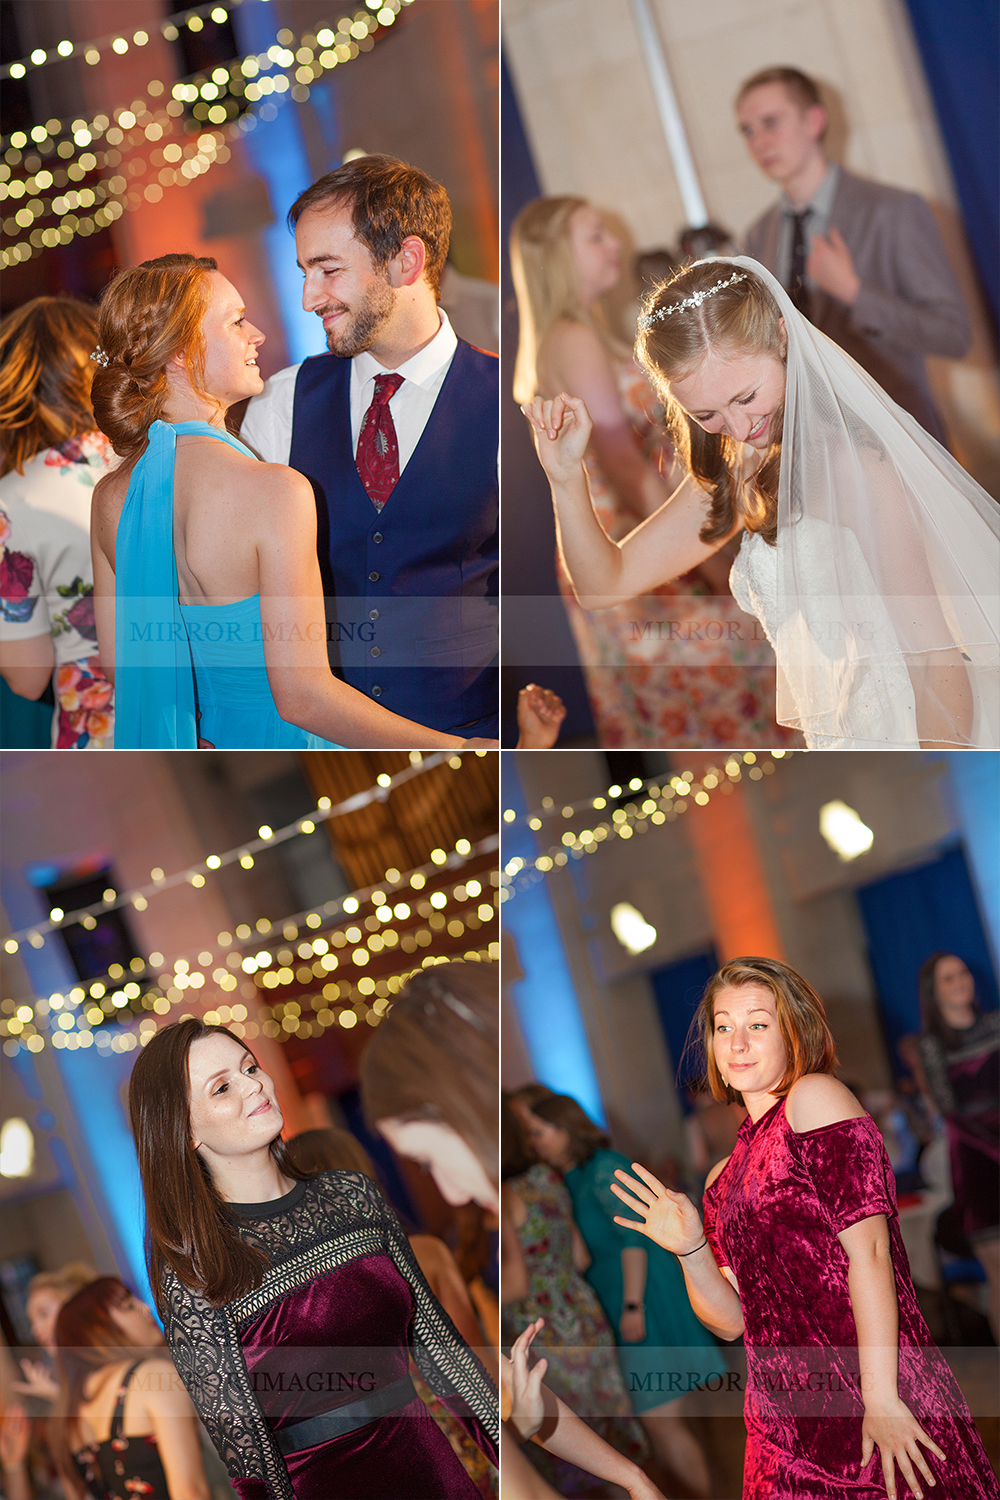 wedding photographers nottingham 68.jpg